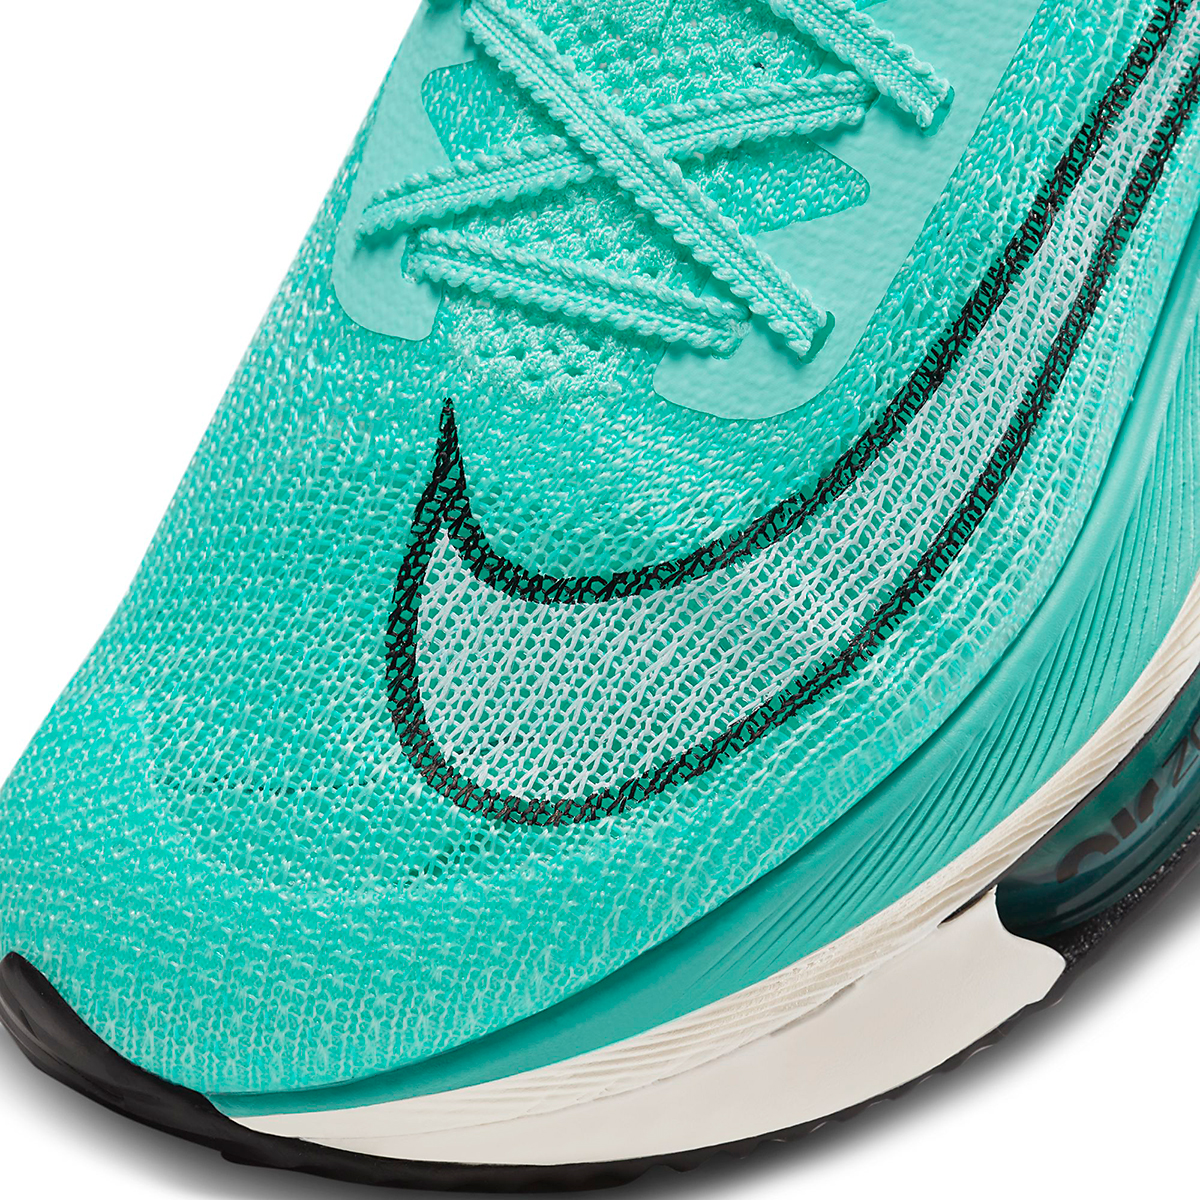 Men's Nike Air Zoom Alphafly Next% Running Shoe - Color: Hyper Turq/White-Black-Oracle Aqua - Size: 6 - Width: Regular, Hyper Turq/White-Black-Oracle Aqua, large, image 6